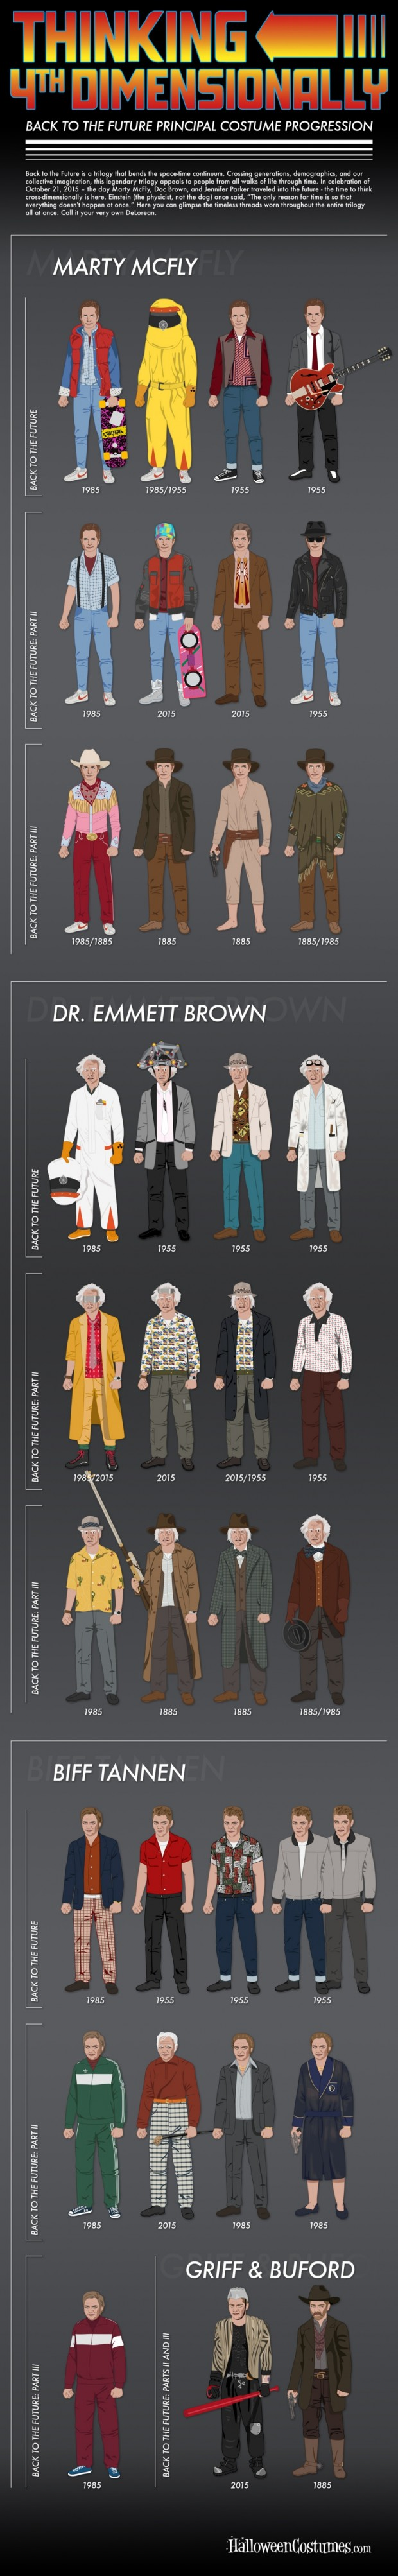 back_to_the_future_costumes_list_2